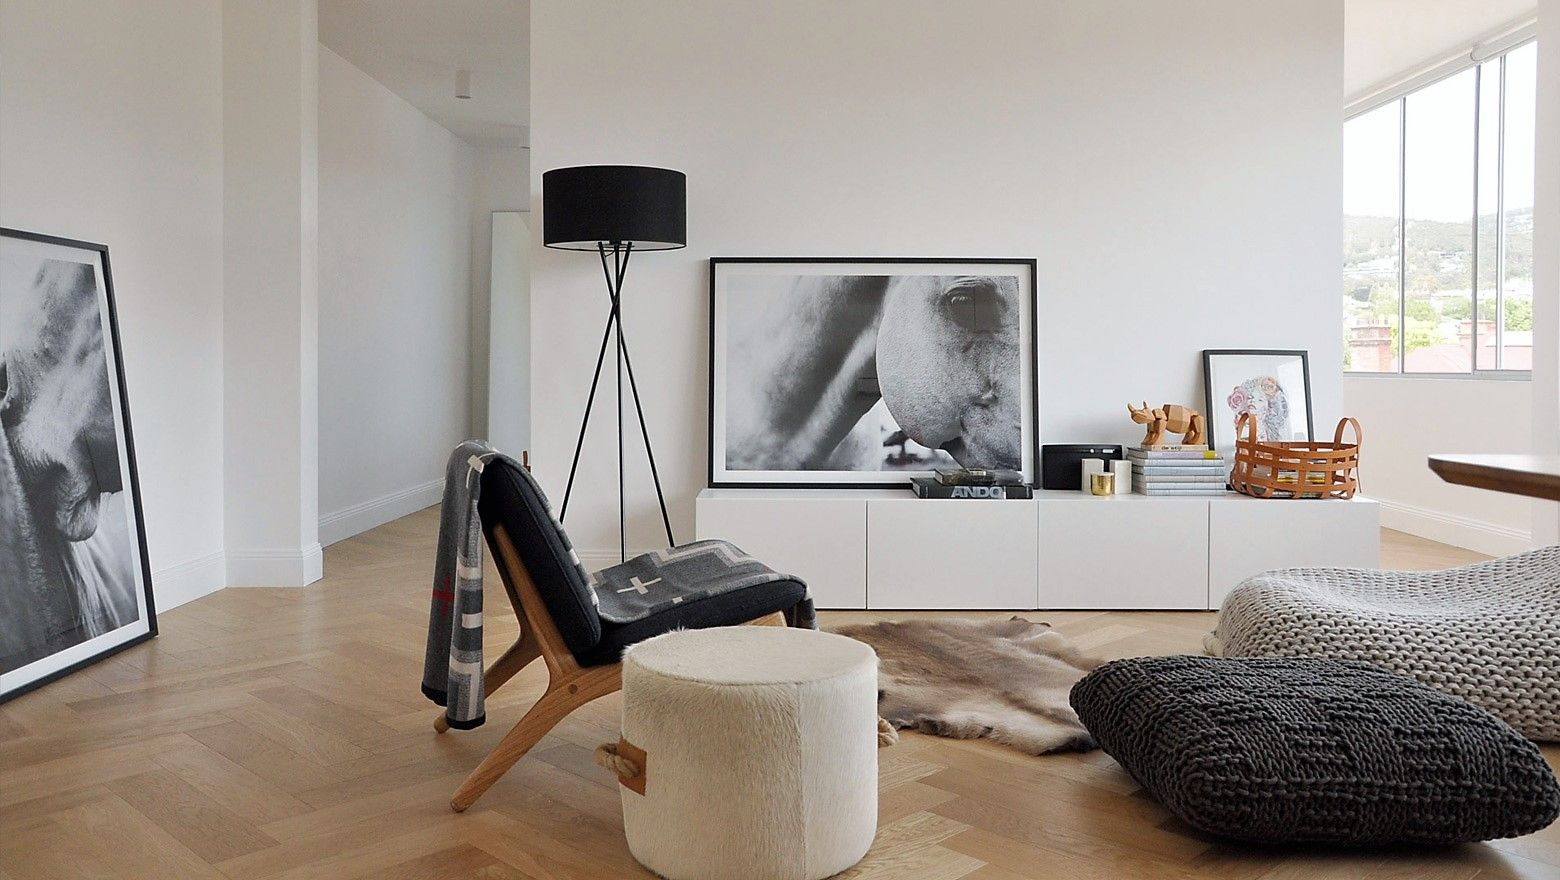 Archive Of Ashfield Apartments By Archier In Hobart Tas Photography By Josh Fitzgerald Interior House Interior Home